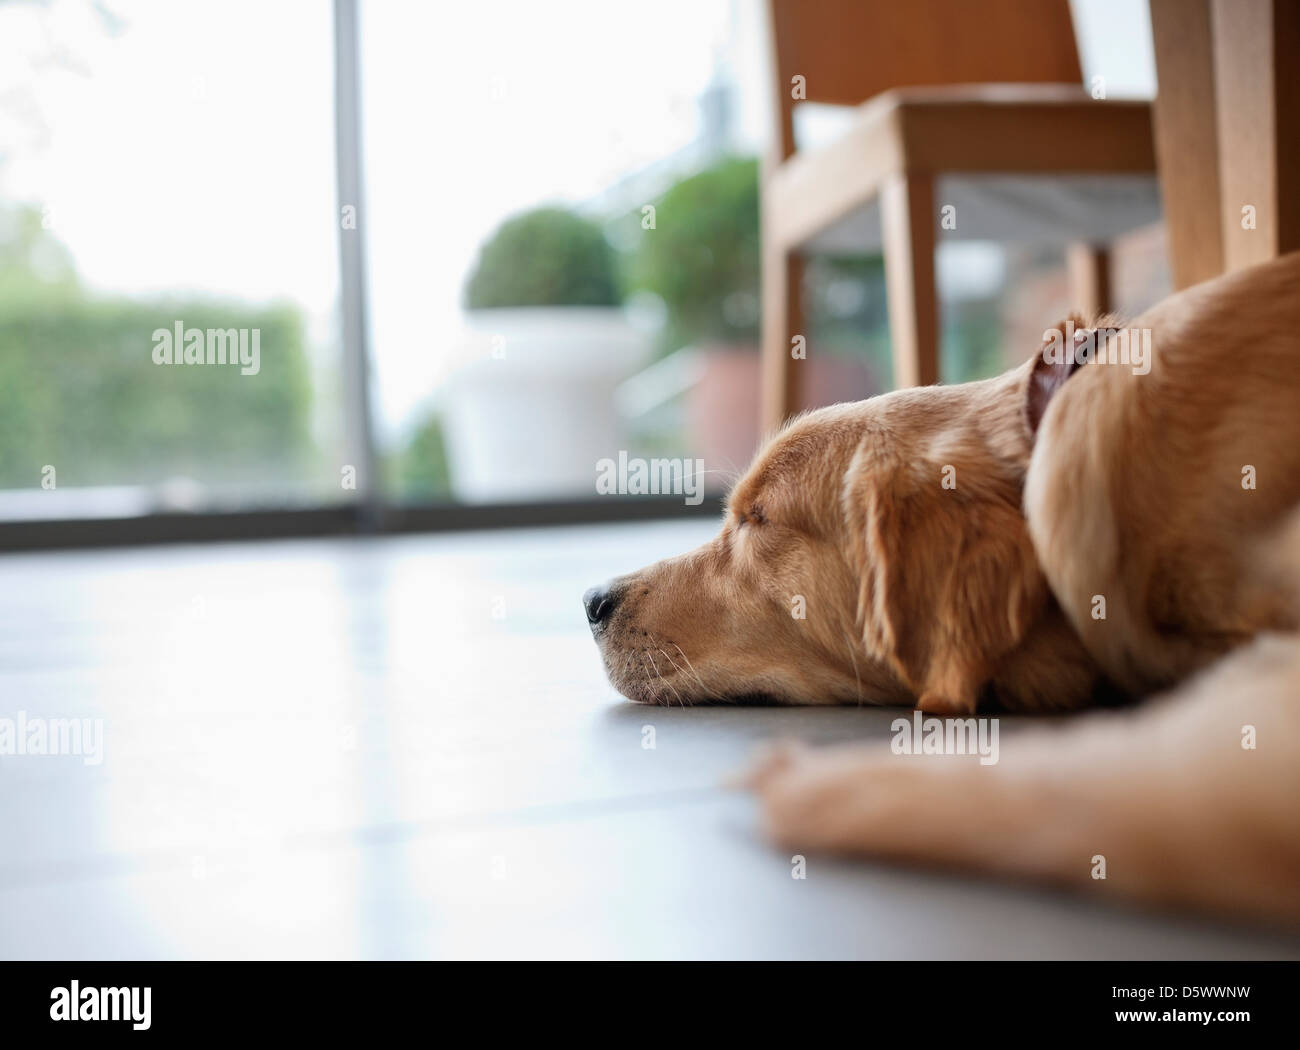 Dog laying on floor in living room - Stock Image